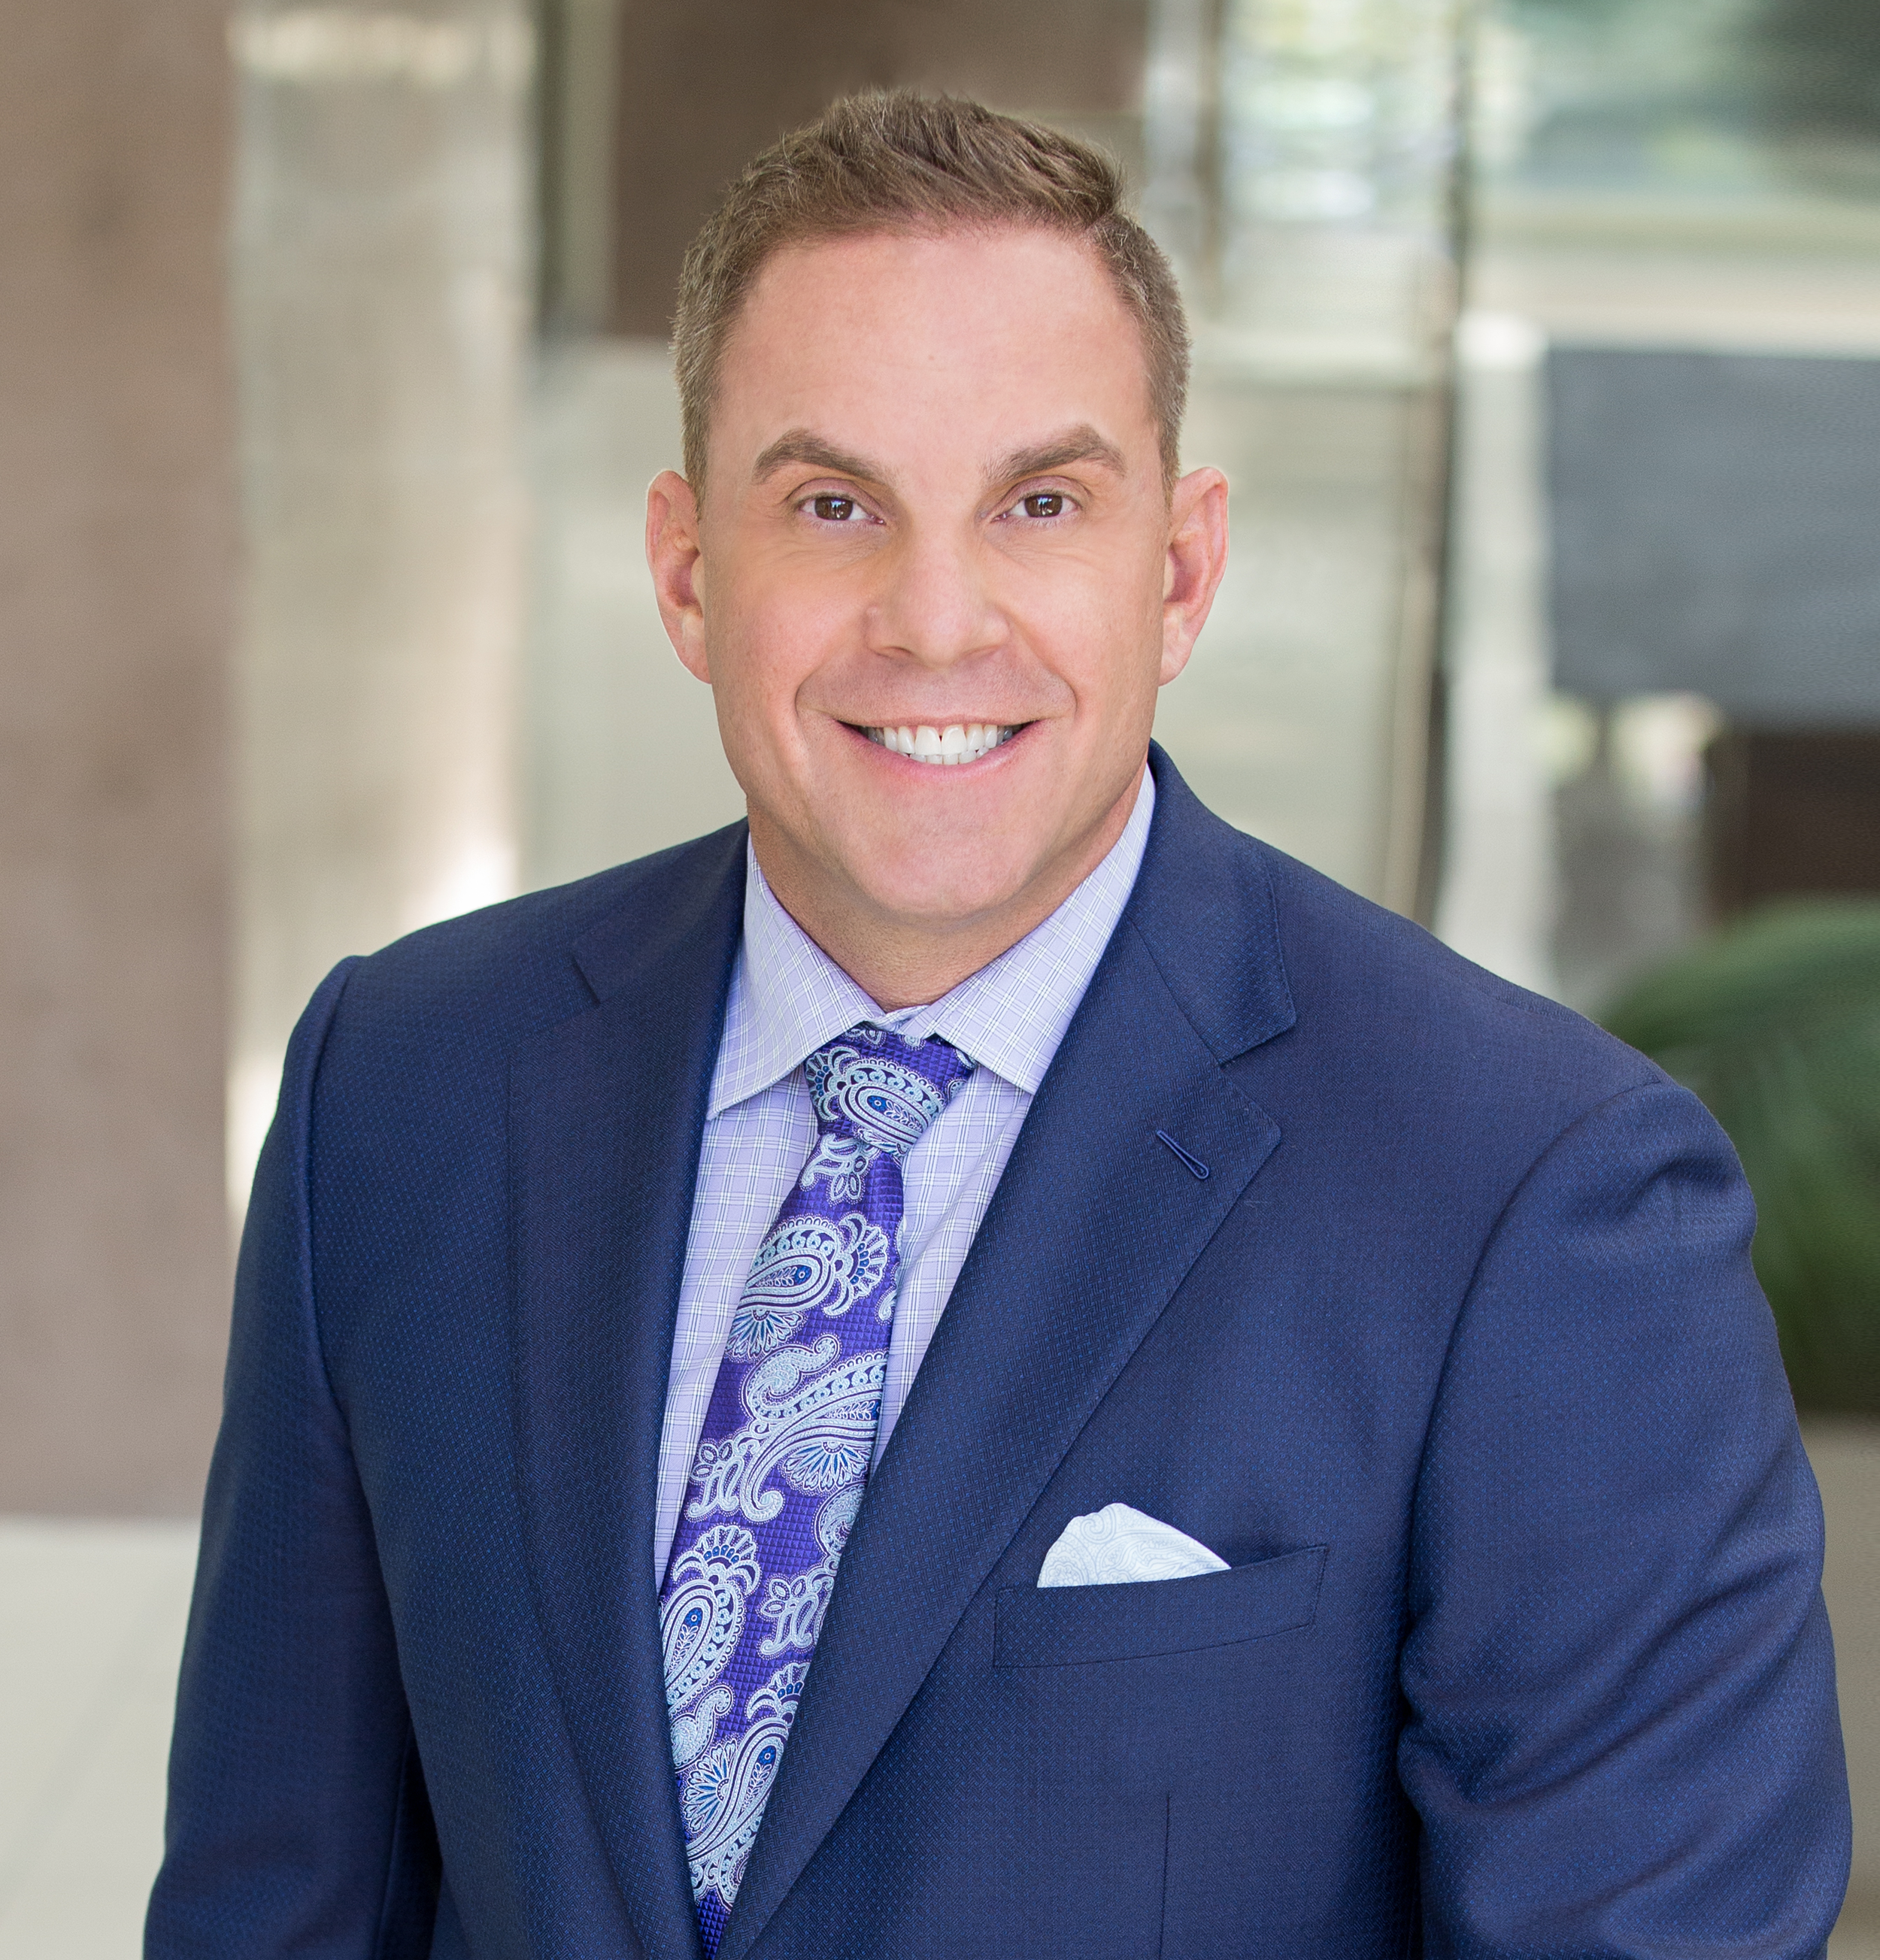 Meet Matthew Cole - The man behind your mortgage deals. Matthew Cole has been in the industry for over 20 years. He is the top 1% lender in the United States and currently the top 10 lenders in California.Learn More